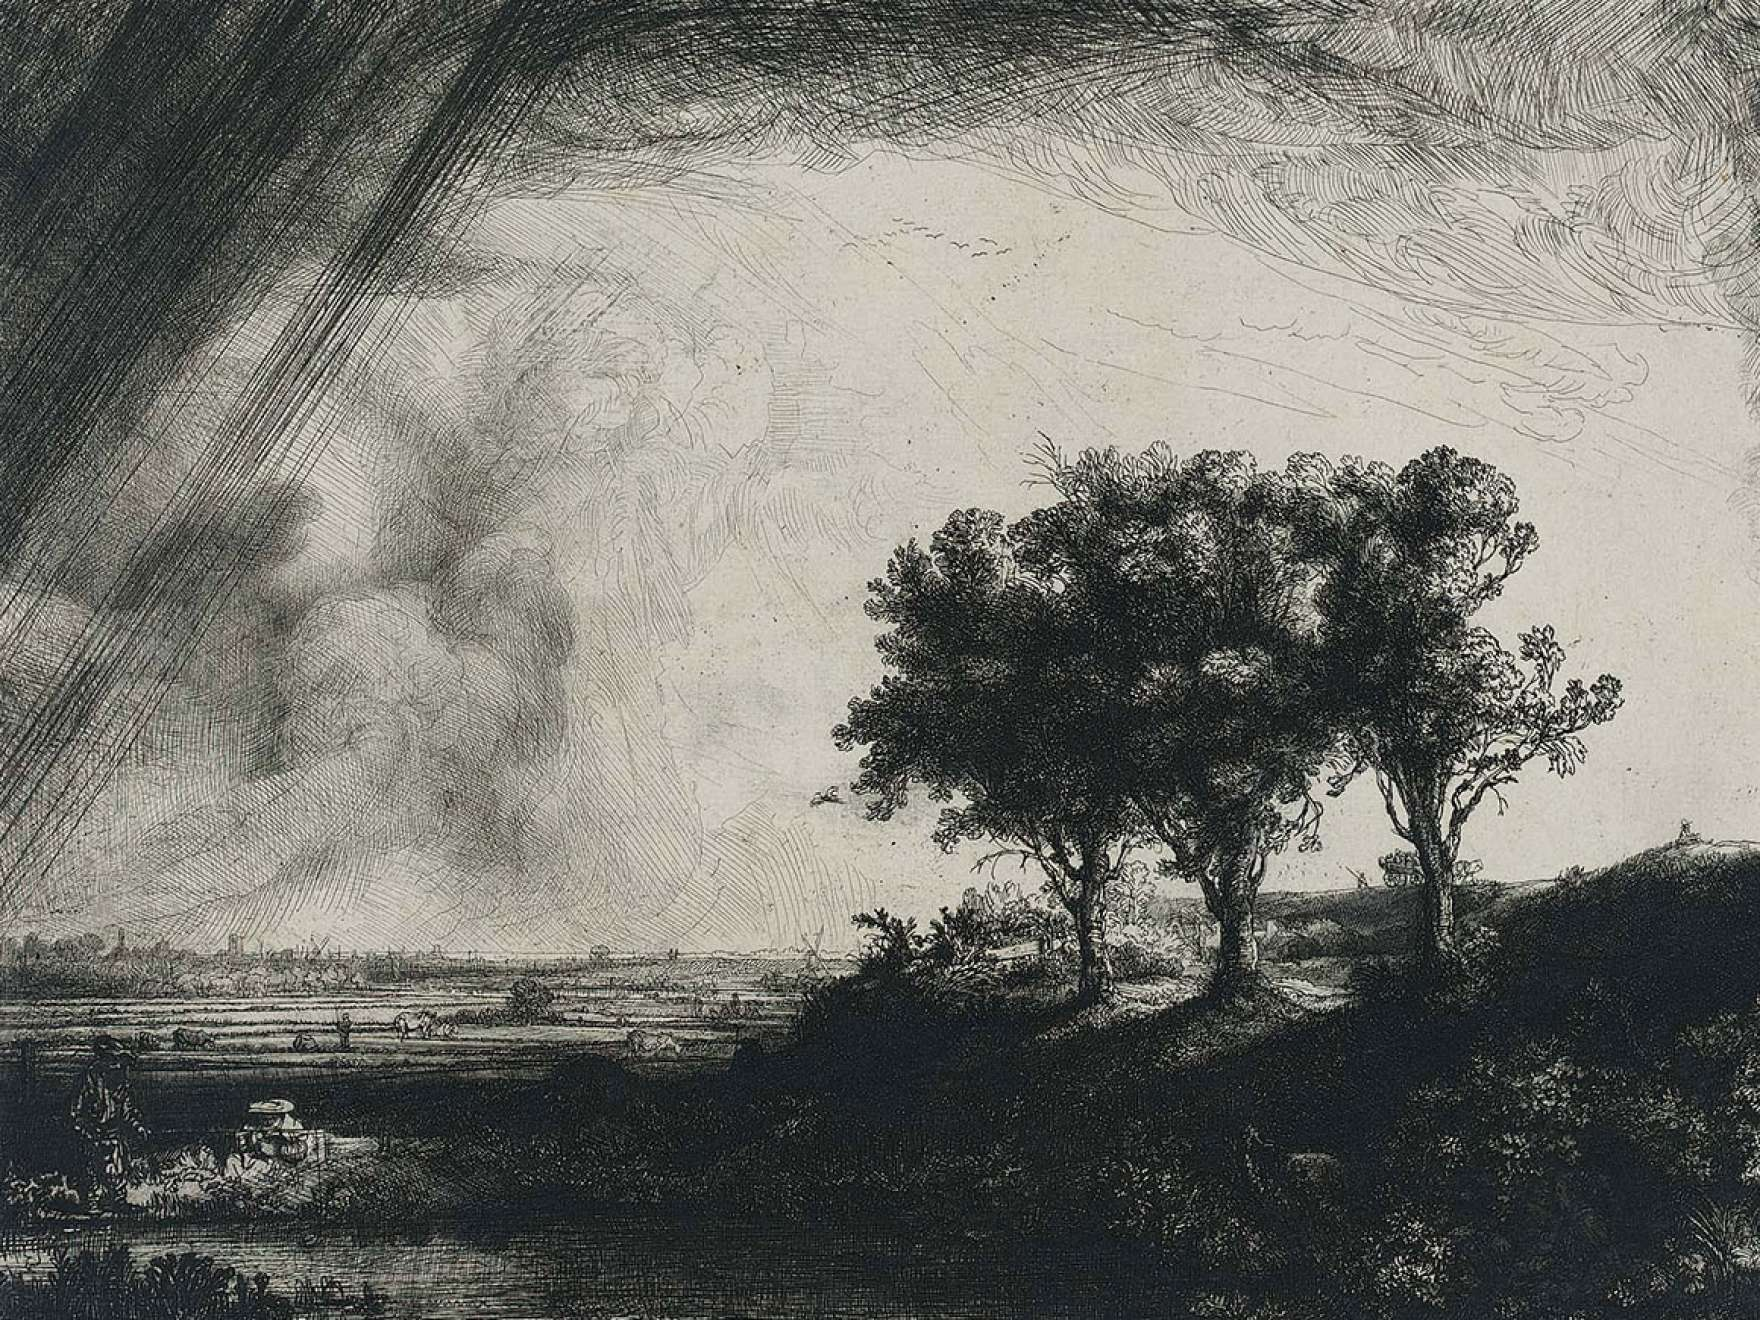 Rembrandt Harmensz. van Rijn's print, The Three Trees